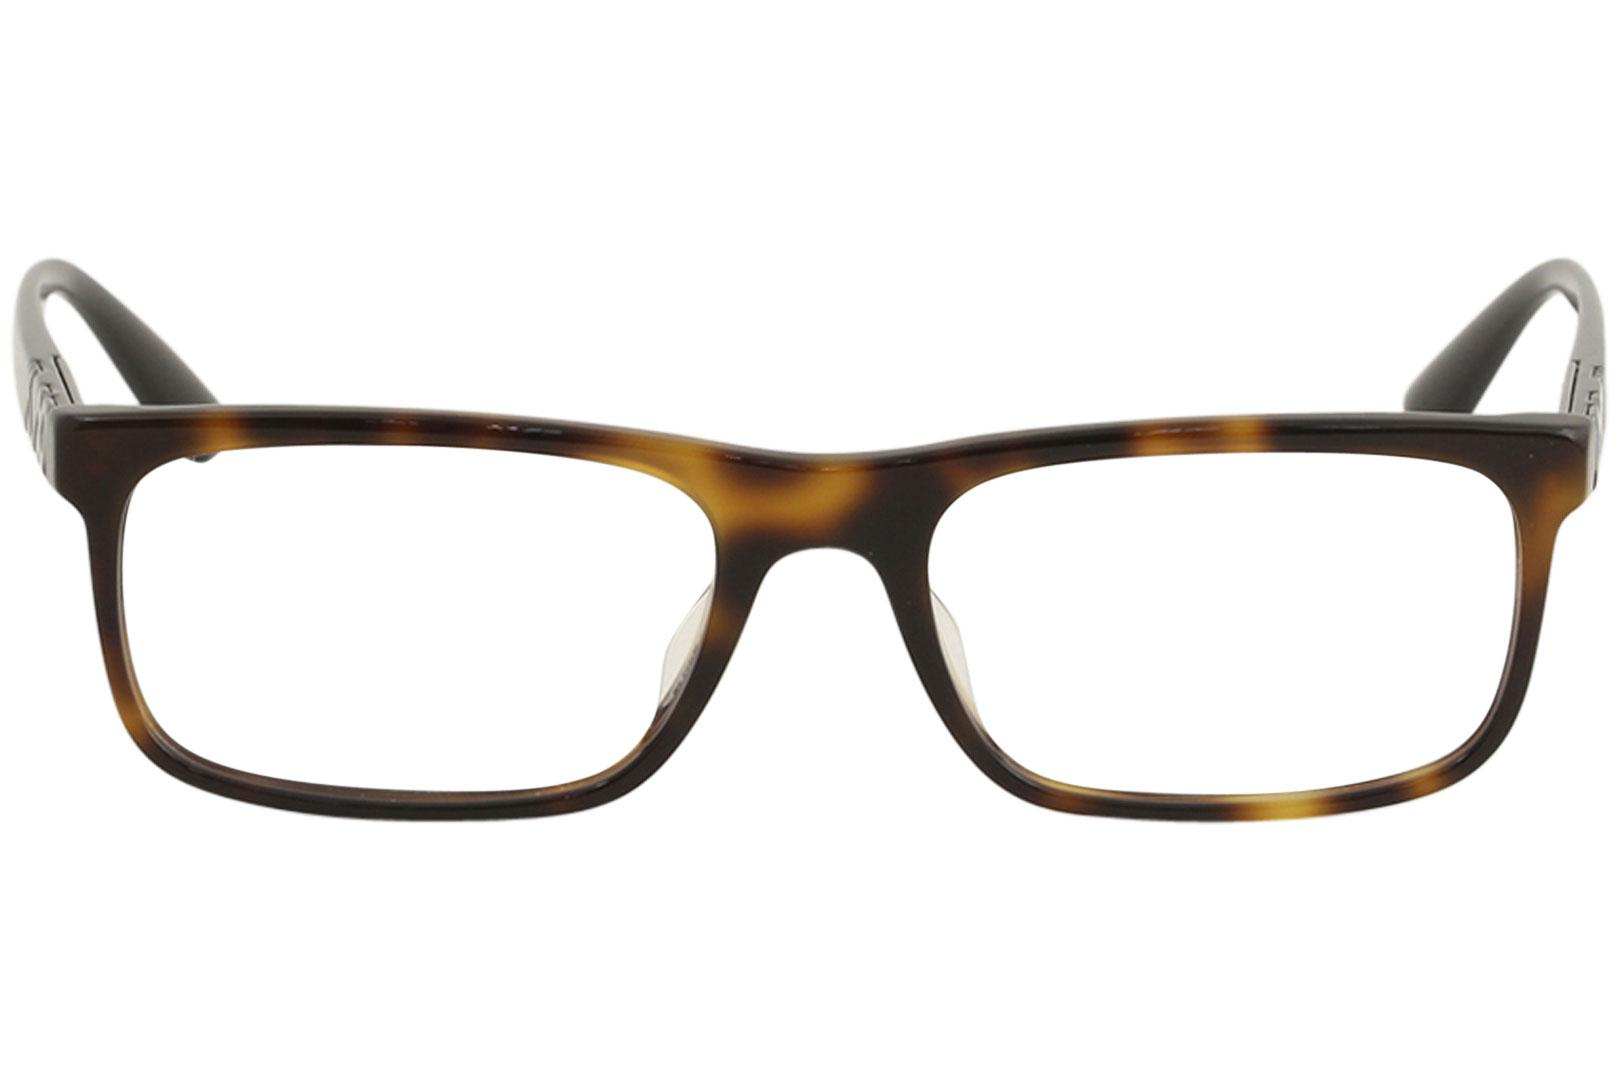 d3a10fe6f56a Burberry Men's Eyeglasses BE2240 BE/2240 Full Rim Optical Frame by Burberry.  12345